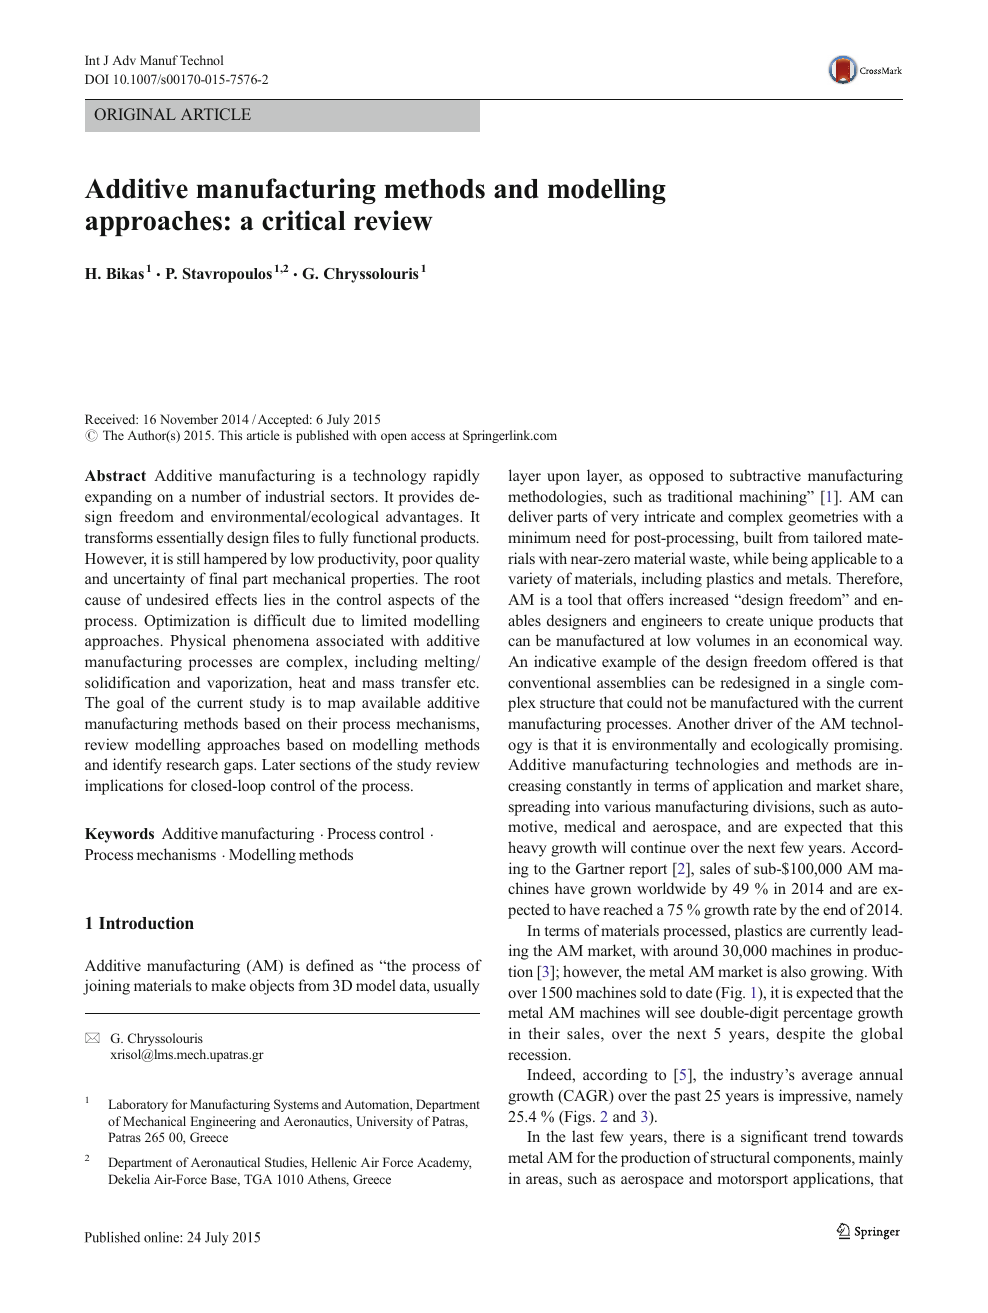 Additive manufacturing methods and modelling approaches: a